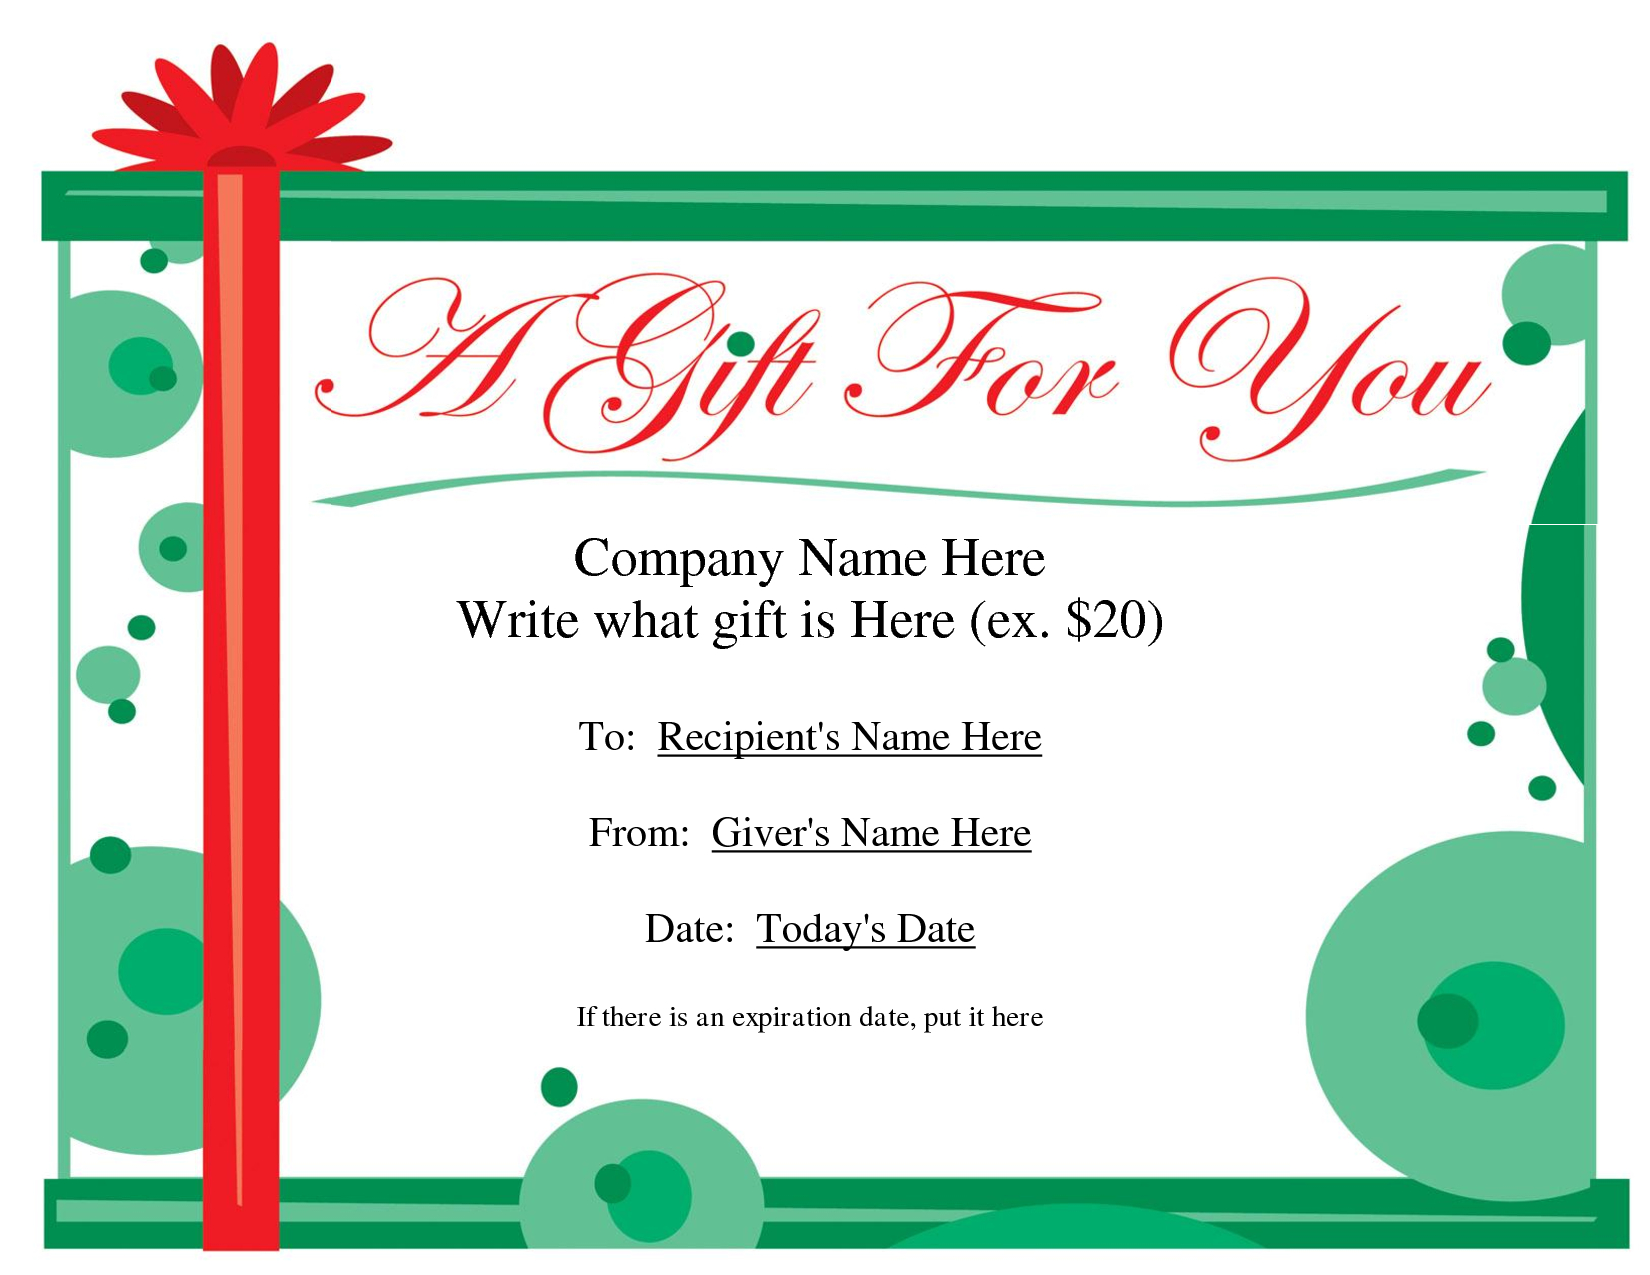 Free Christmas Gift Certificate Templates | Ideas For The House - Free Printable Gift Certificates